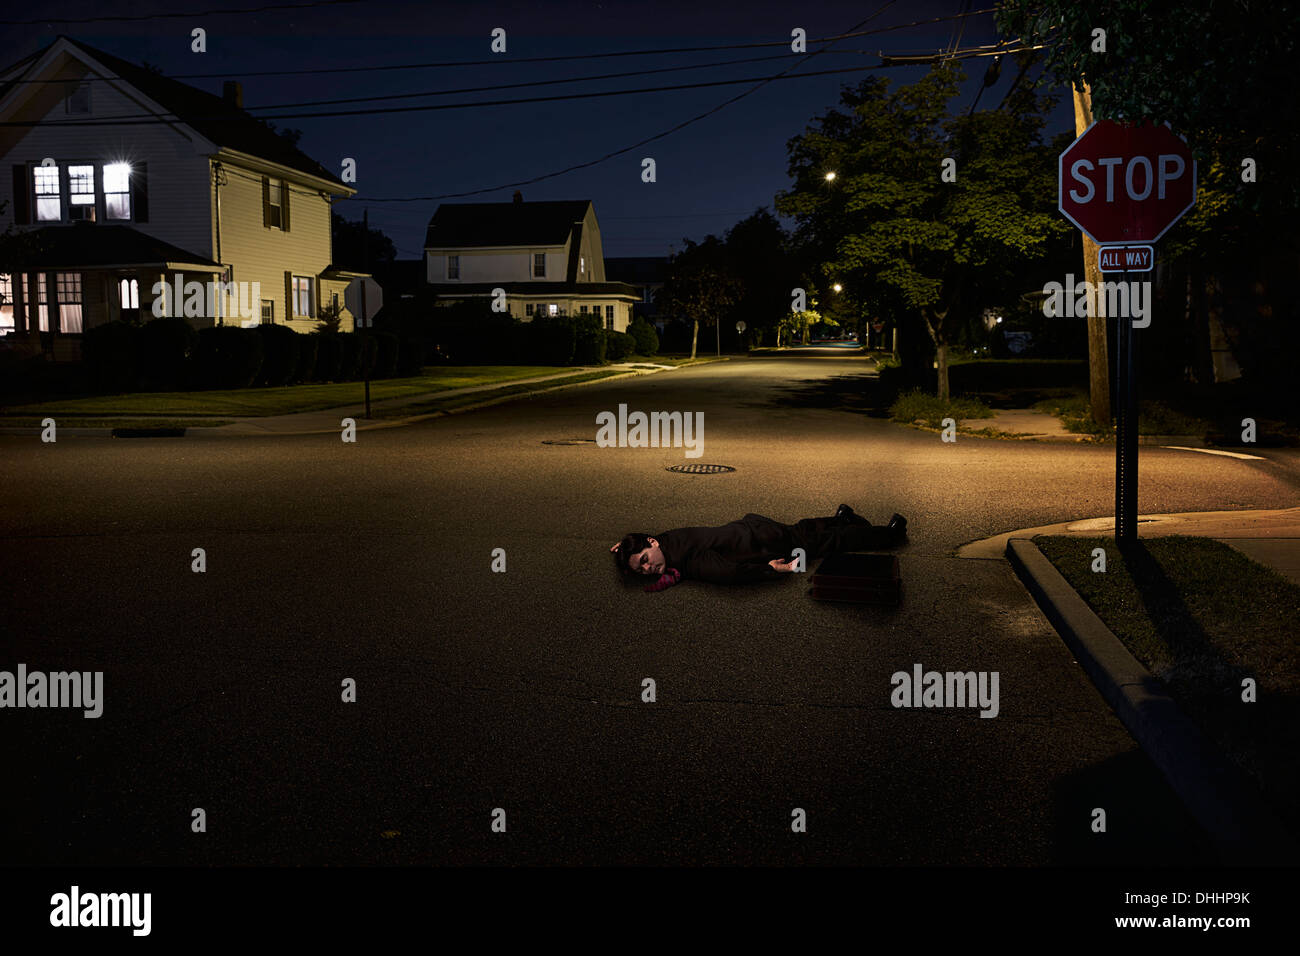 Businessman lying on suburban street unconscious at night - Stock Image